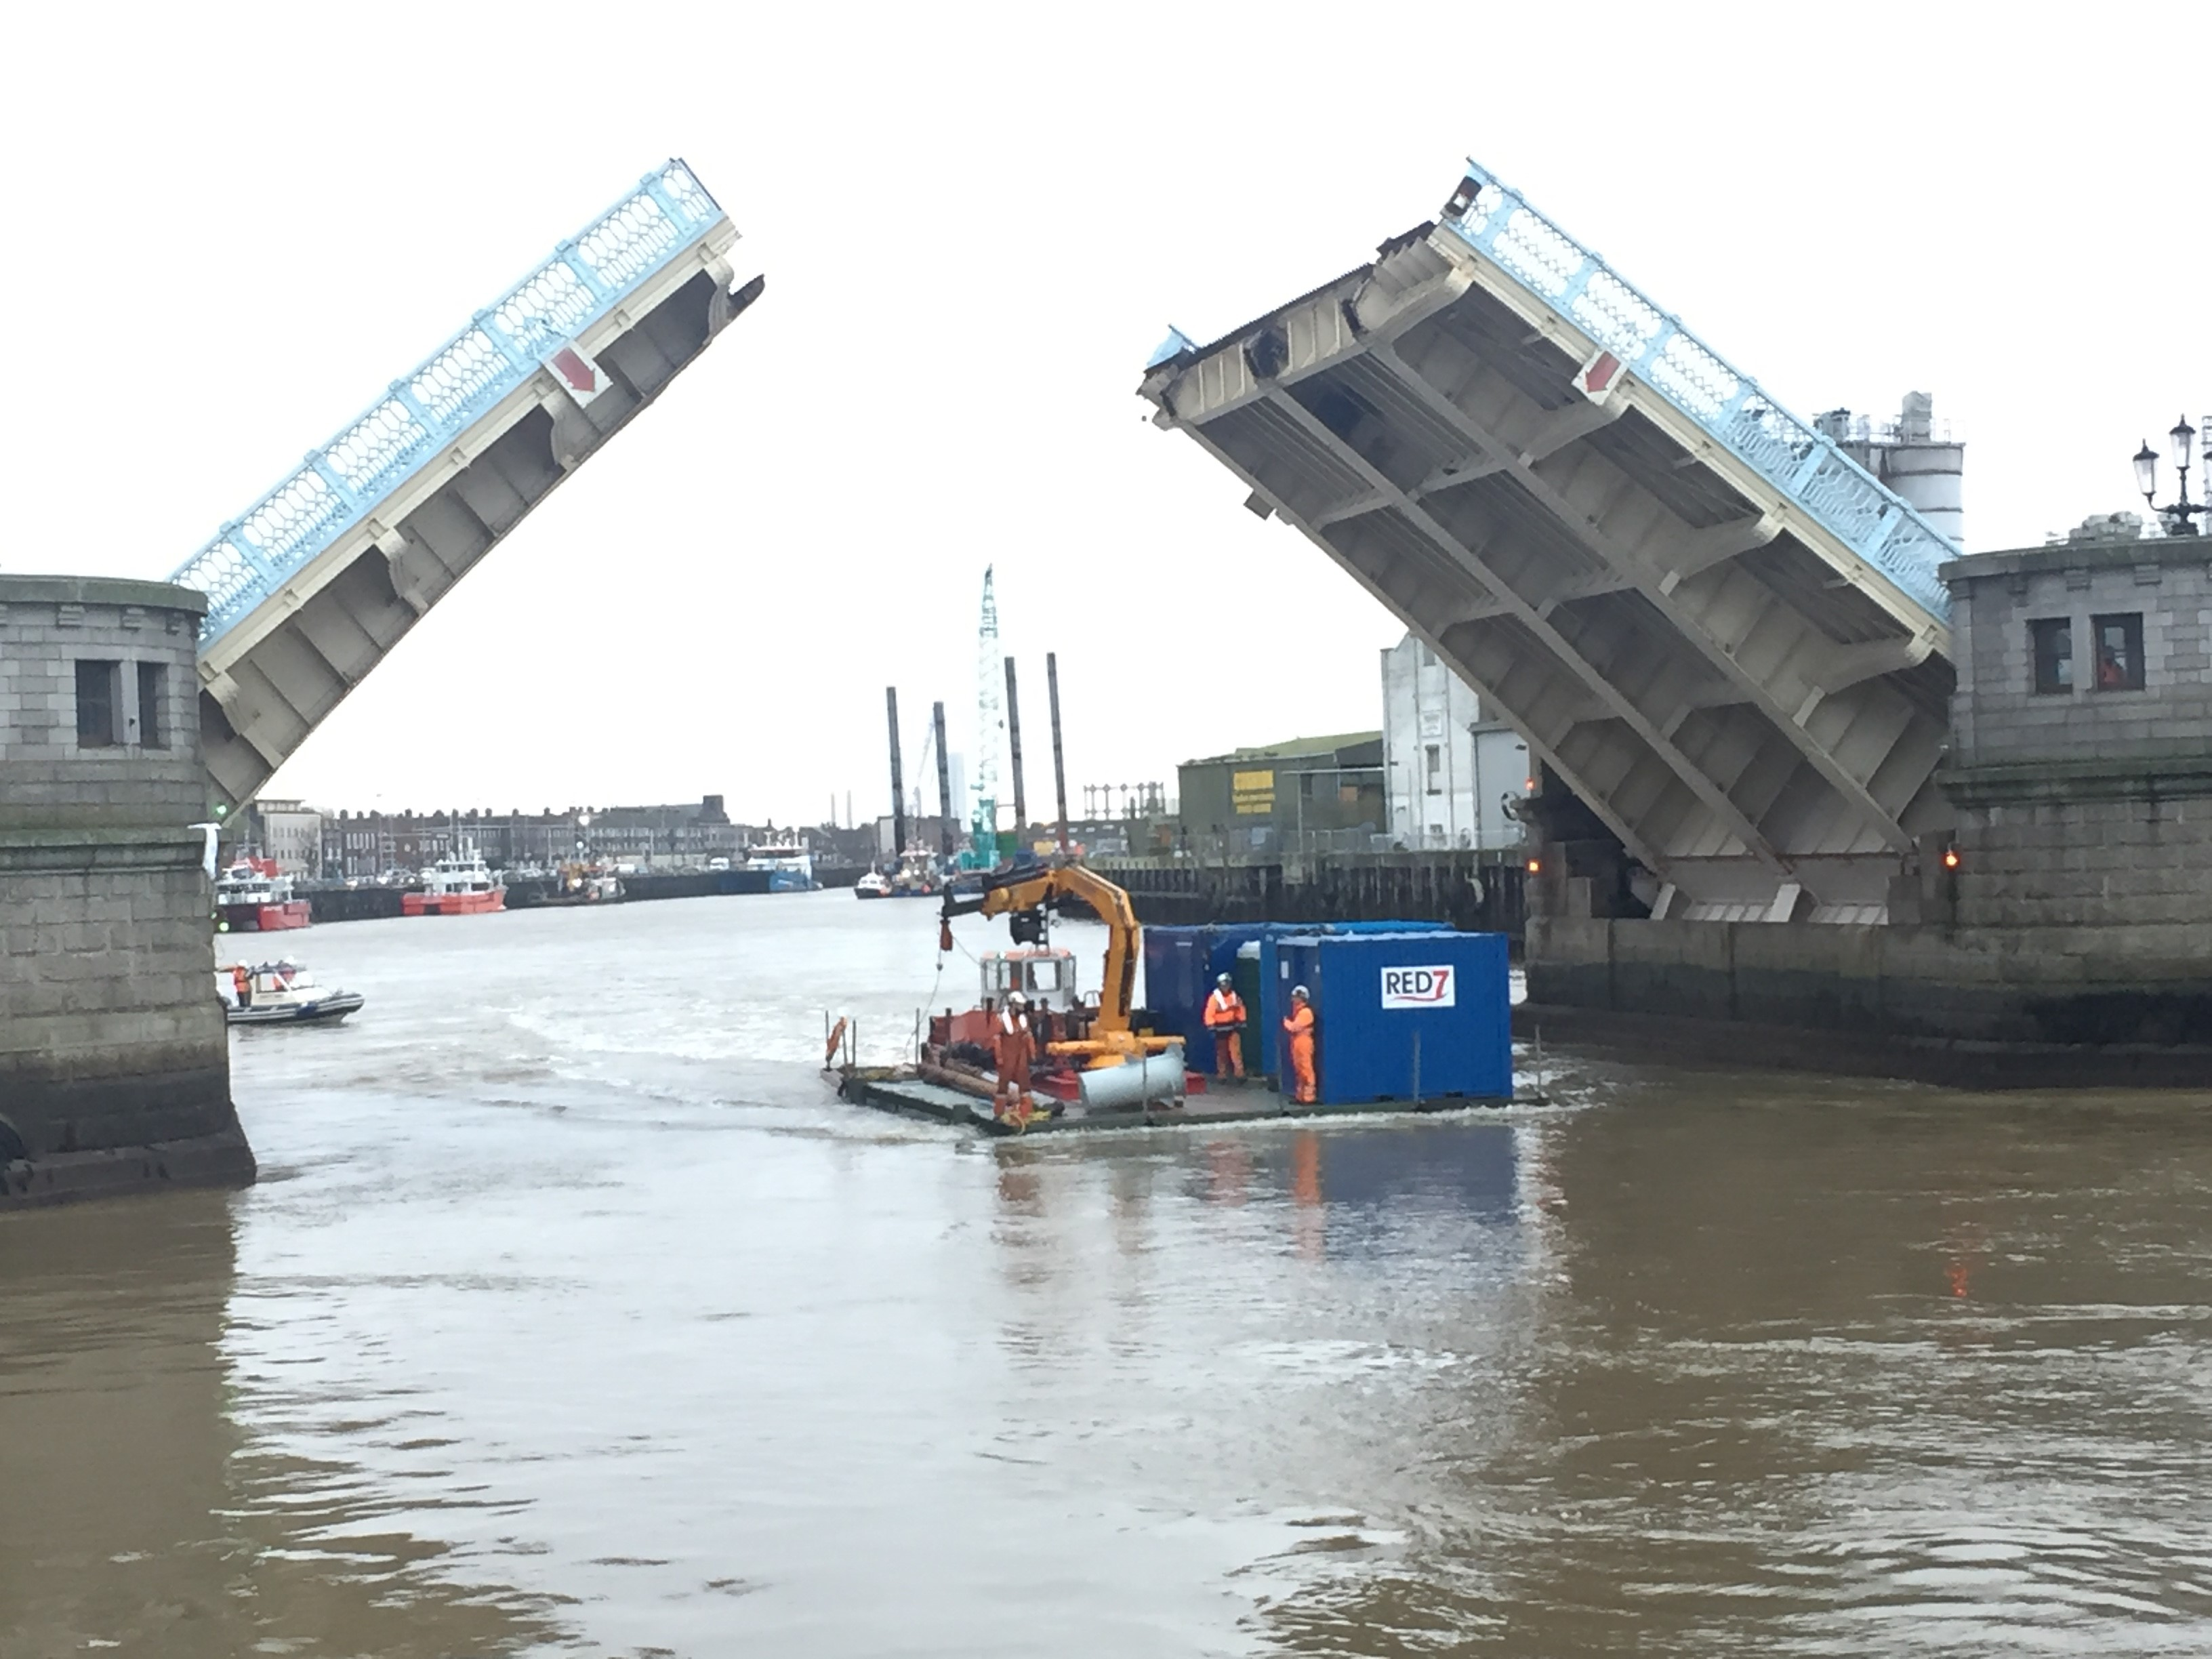 Red 7's Pontoon being moved from The River Yare to The River Bure to being work.